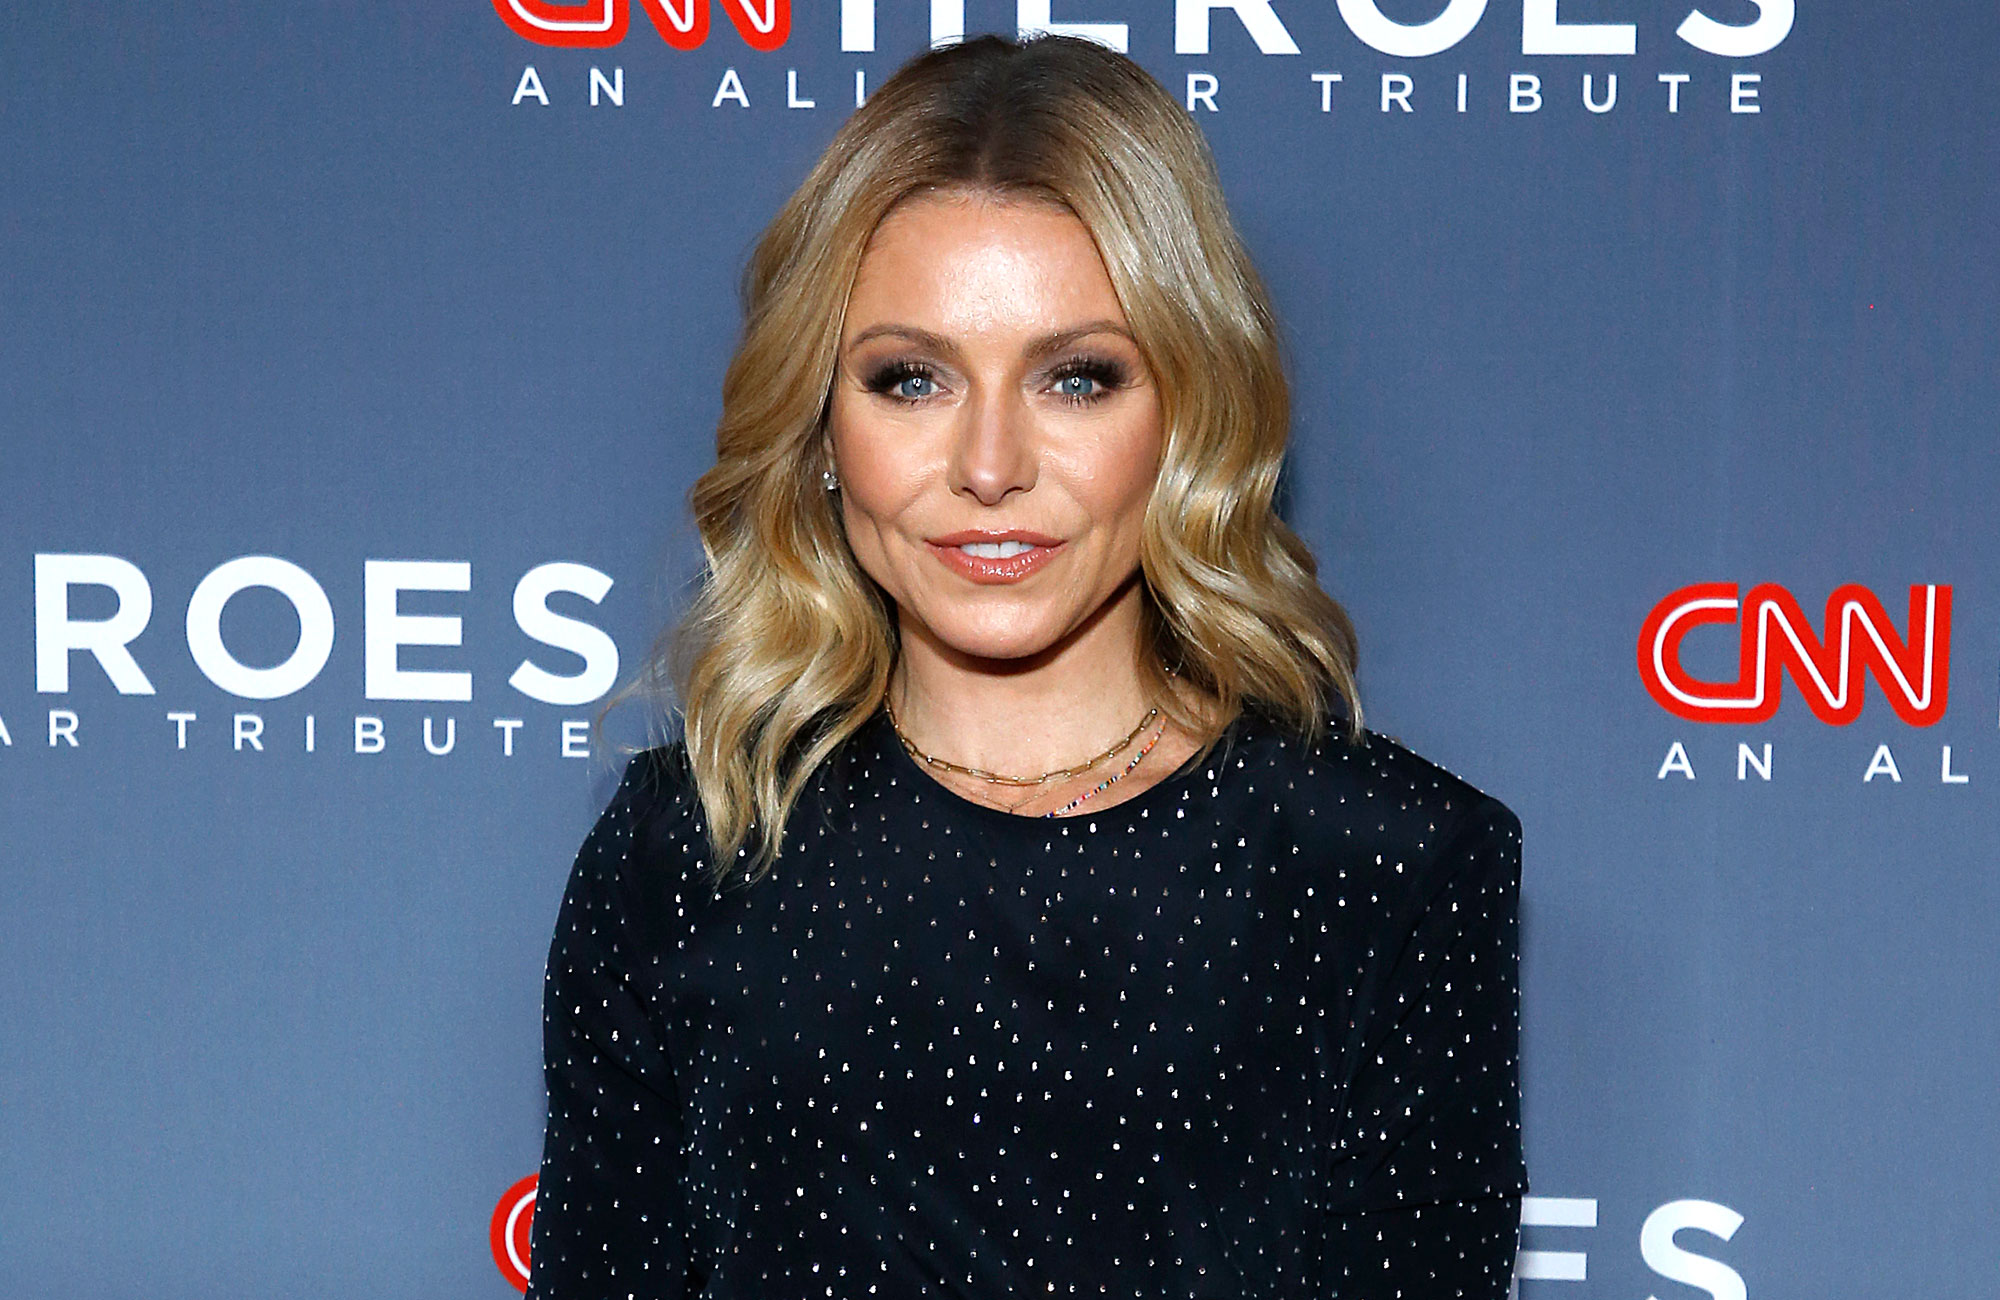 Celebs Weigh in on Kelly Ripa vs 'The Bachelor' Kelly Ripa CNN Heroes - Kelly Ripa attends 12th Annual CNN Heroes: An All-Star Tribute at American Museum of Natural History on December 09, 2018 in New York City.